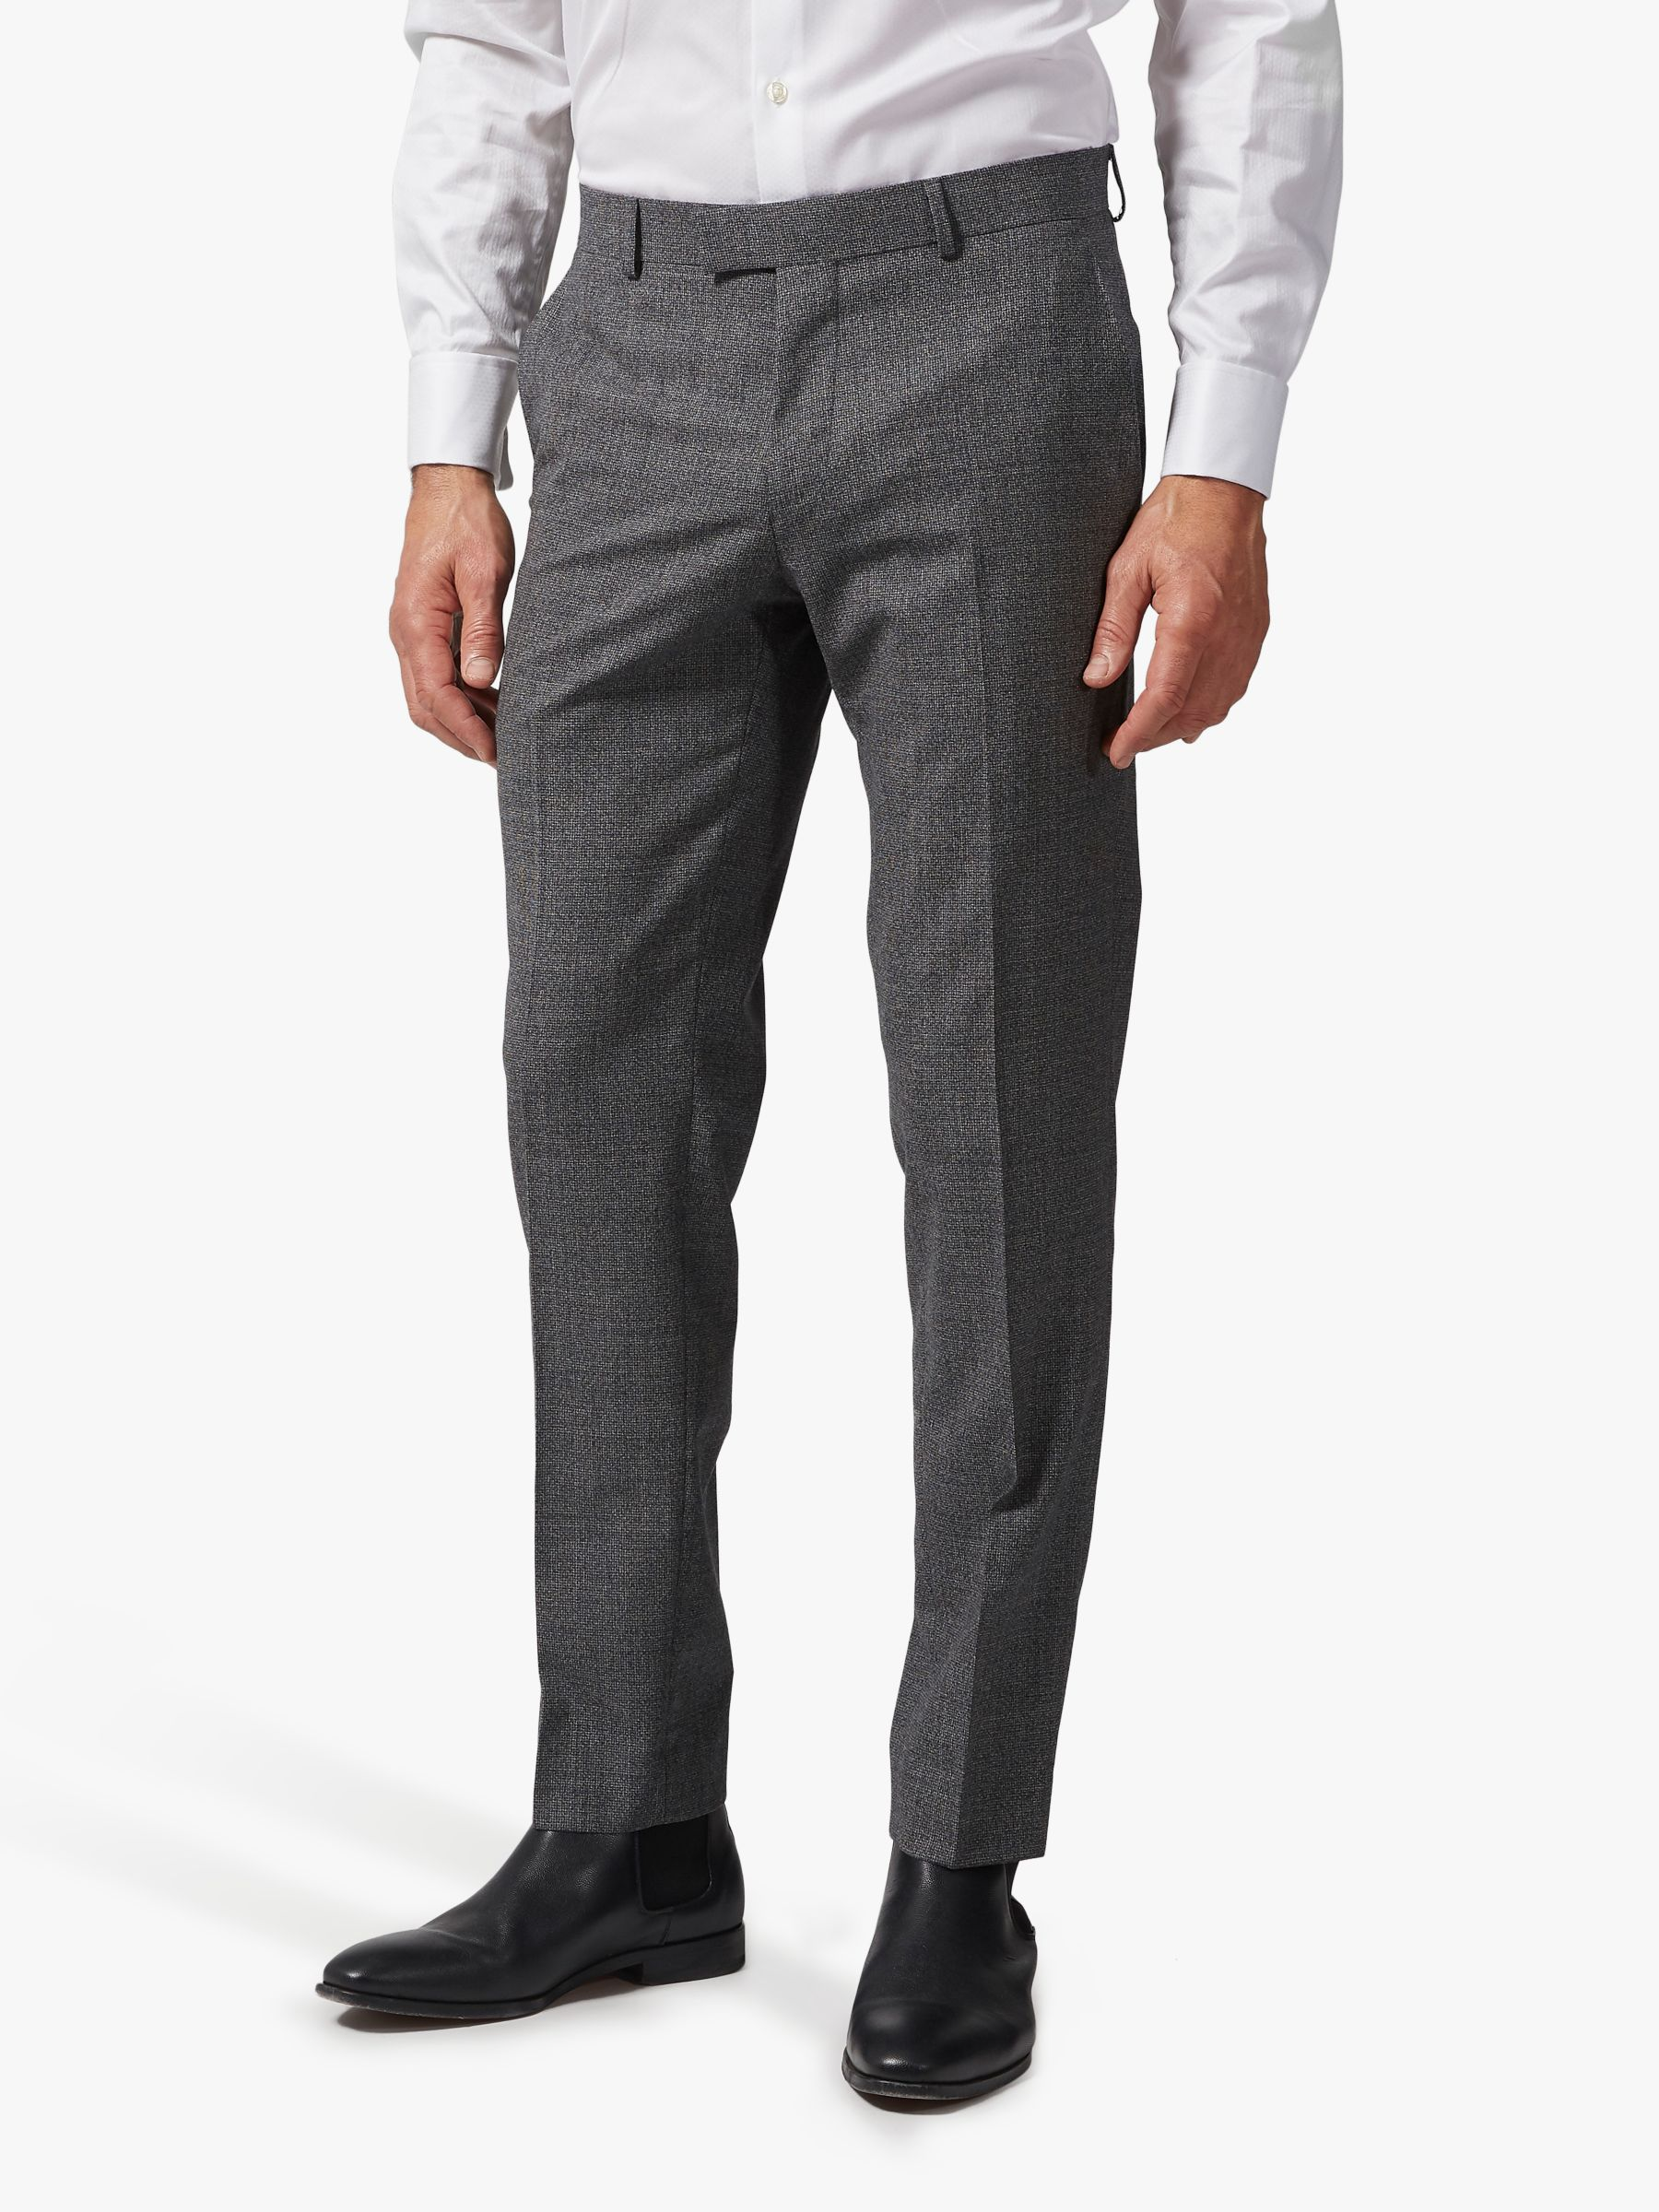 Richard James Mayfair Richard James Mayfair Melange Wool Tailored Suit Trousers, Grey